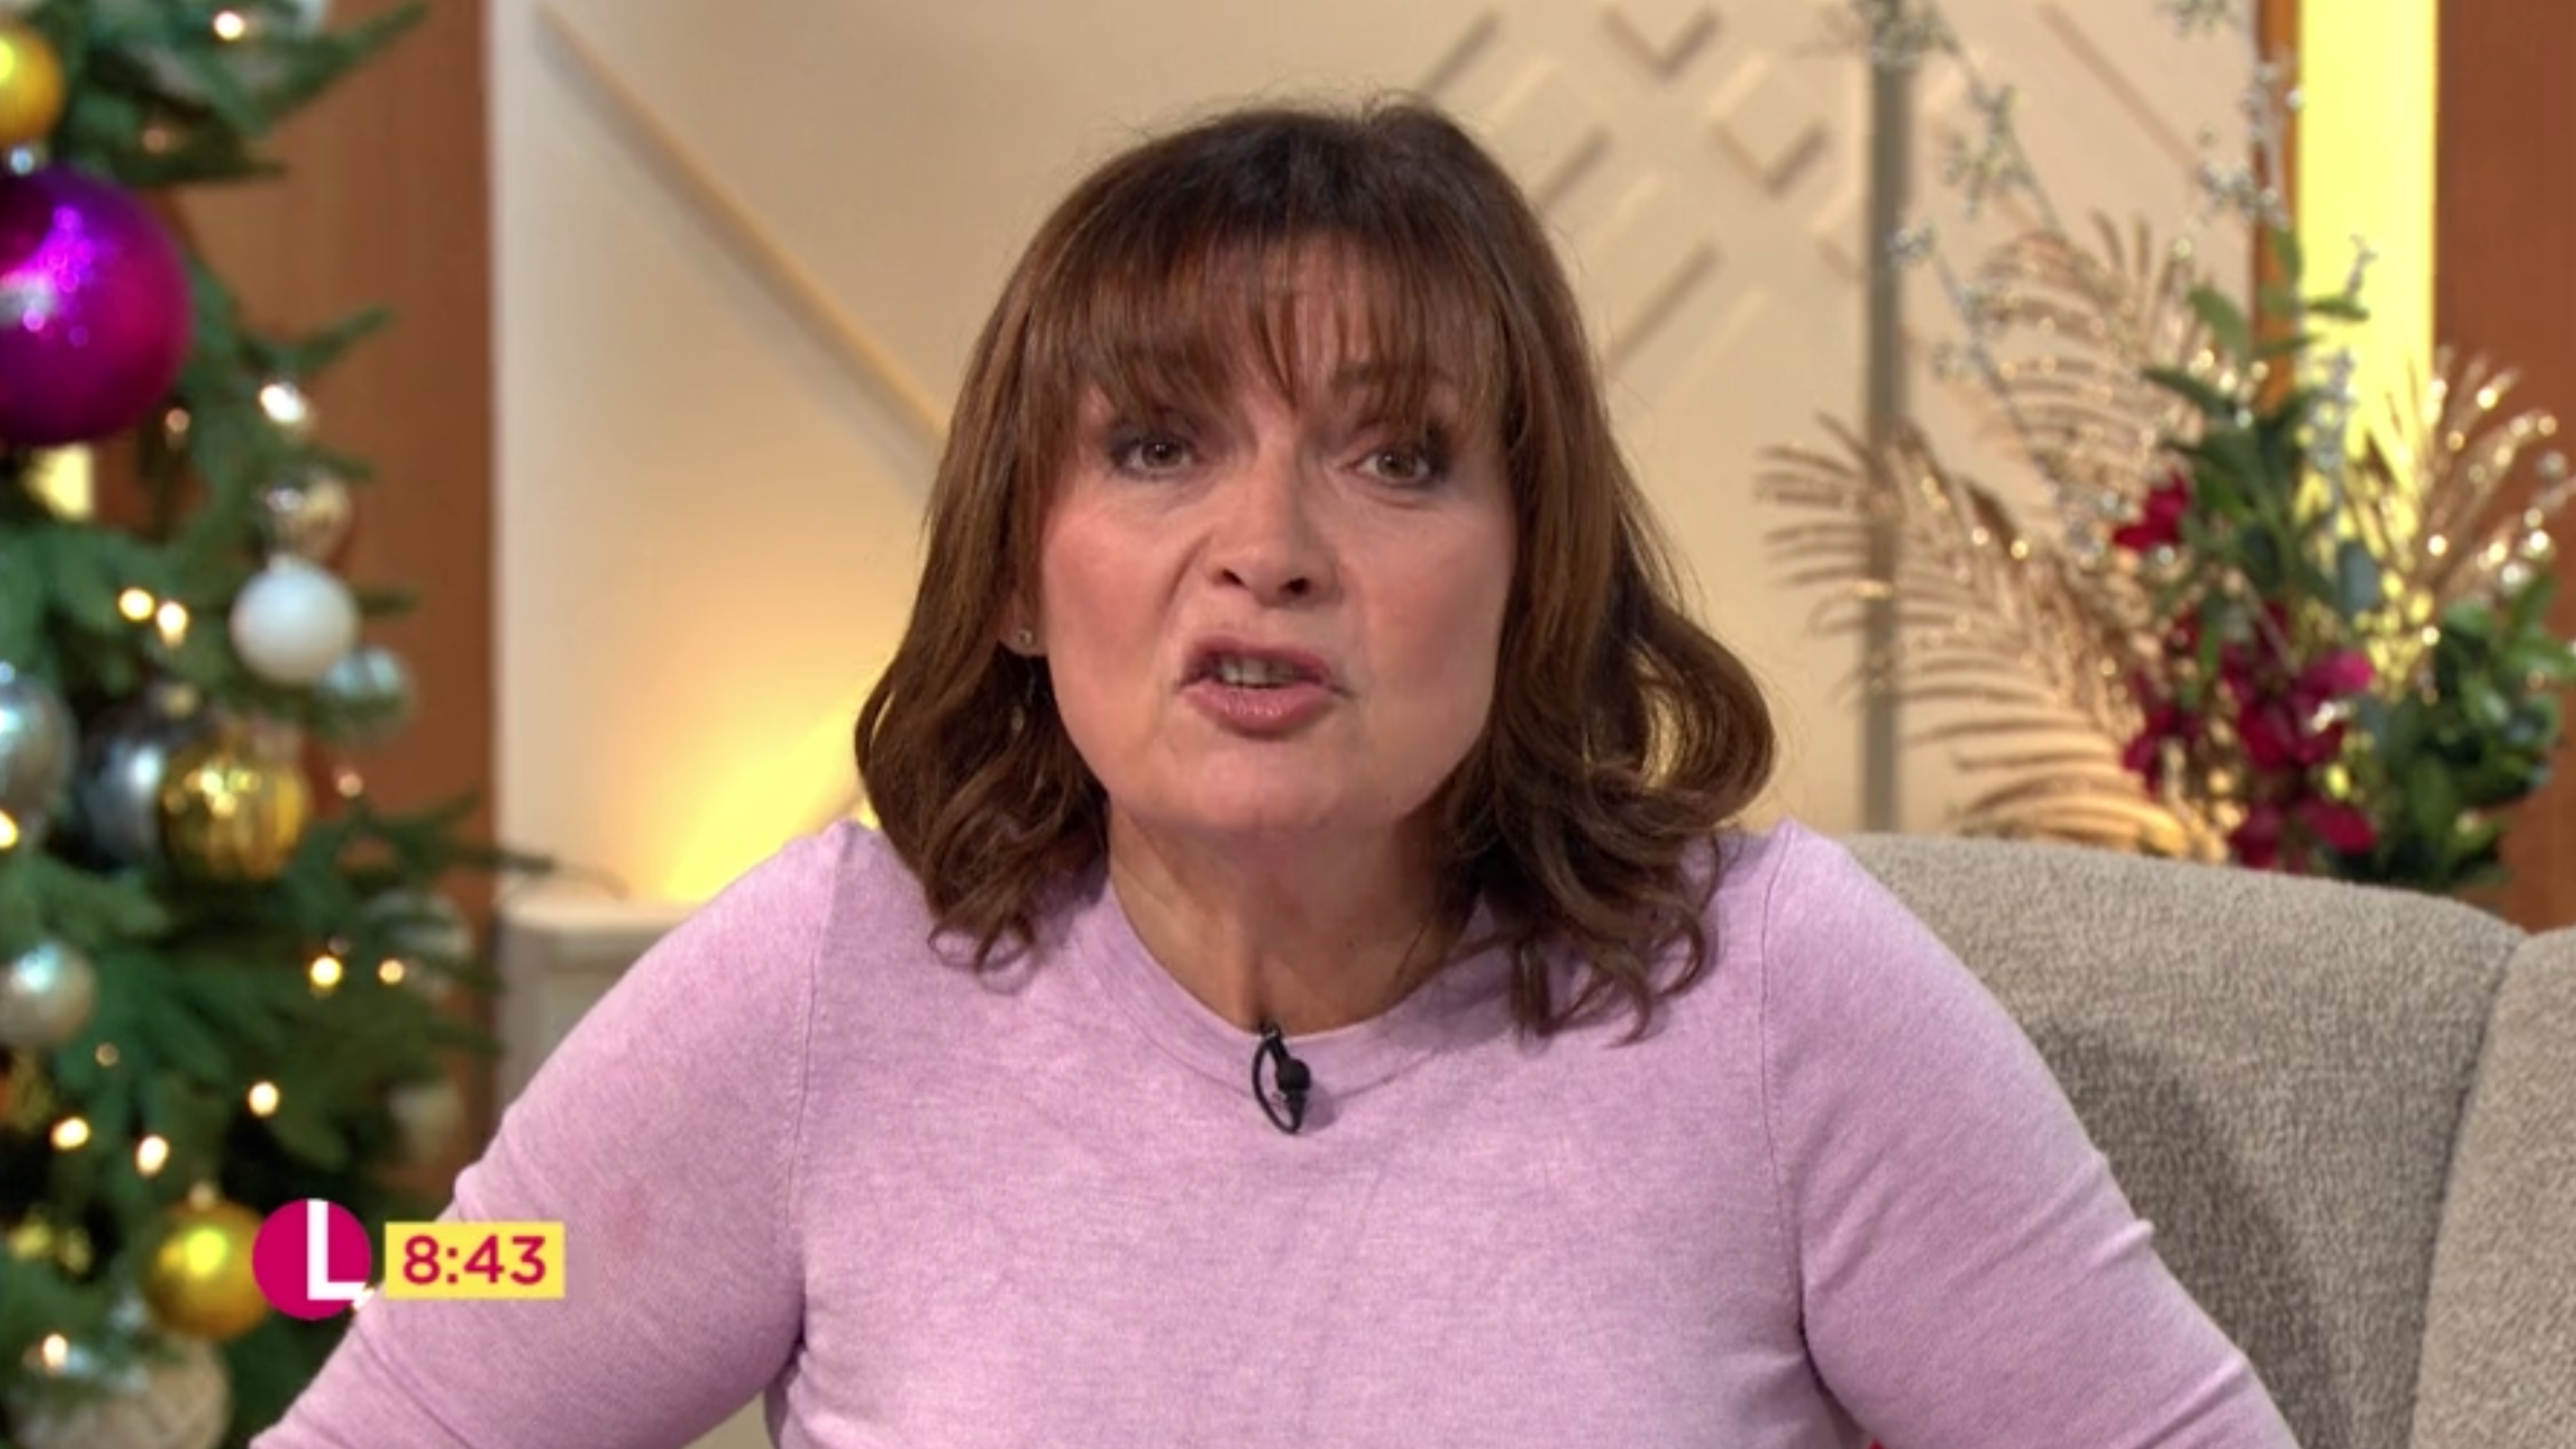 Lorraine Kelly slammed for 'catty' dig at Caroline Flack over Love Island replacement